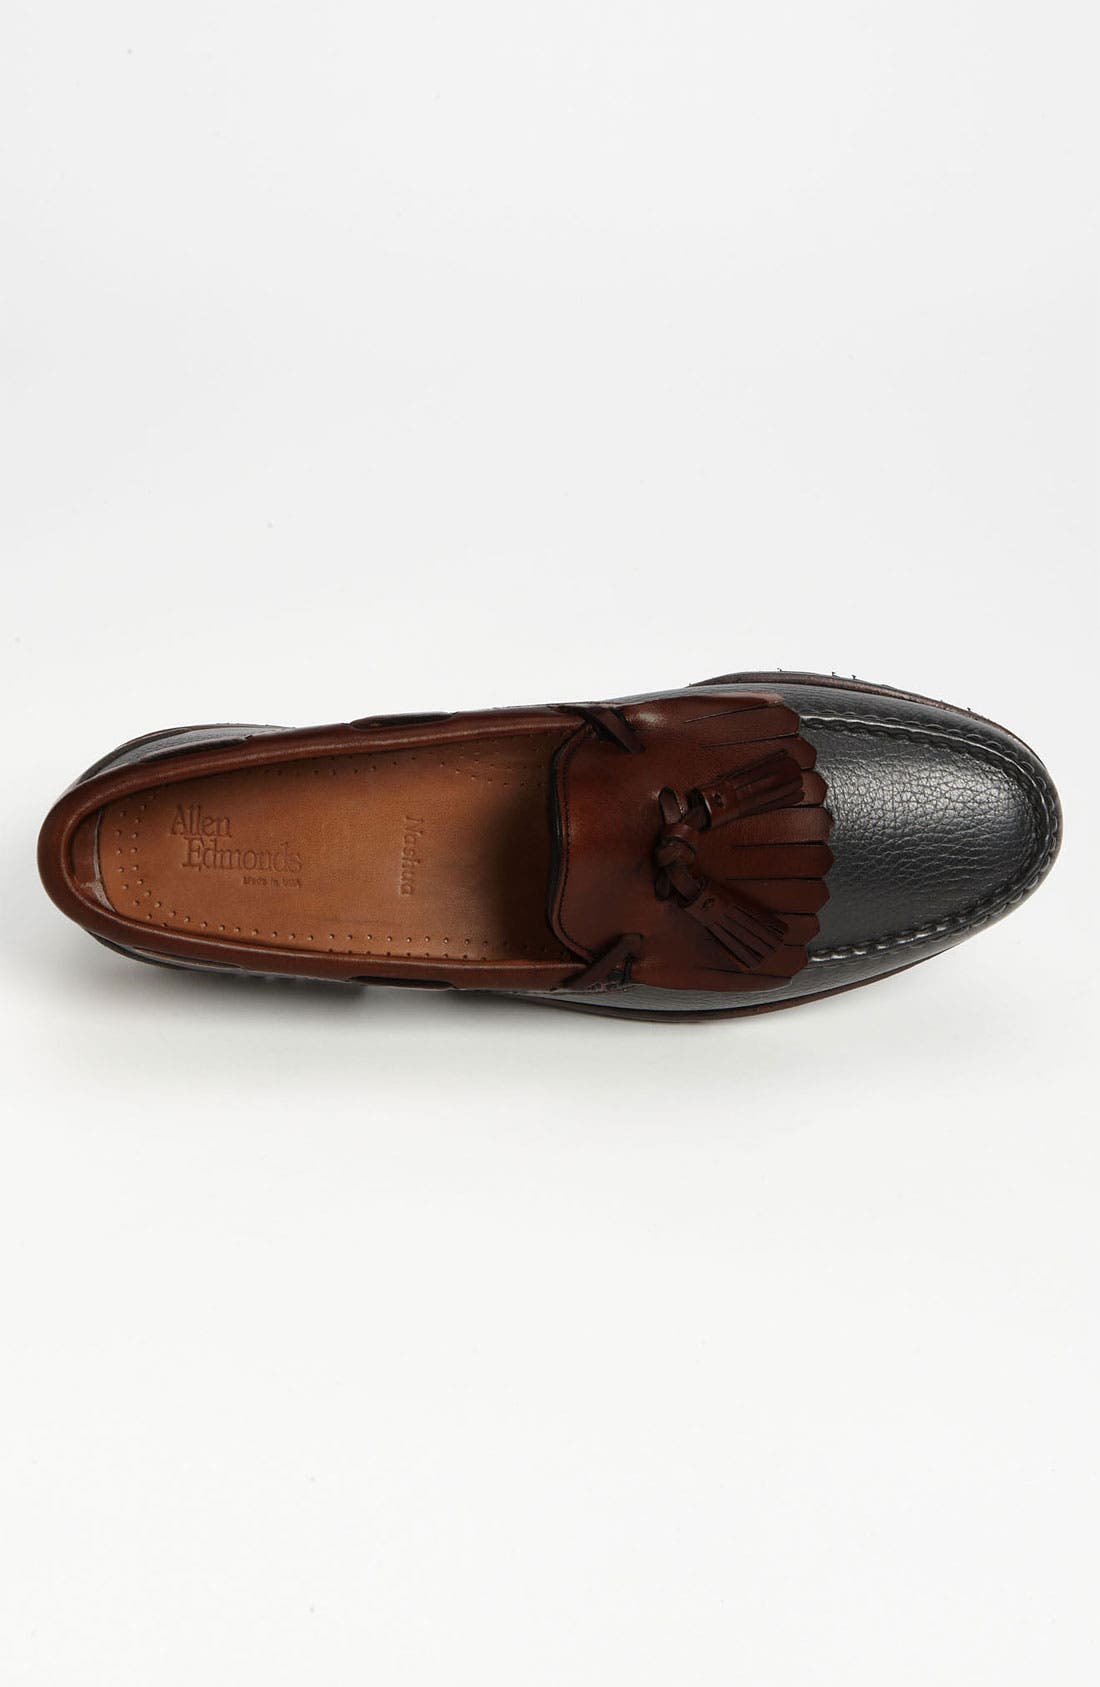 Alternate Image 3  - Allen Edmonds 'Nashua' Tassel Loafer (Men)